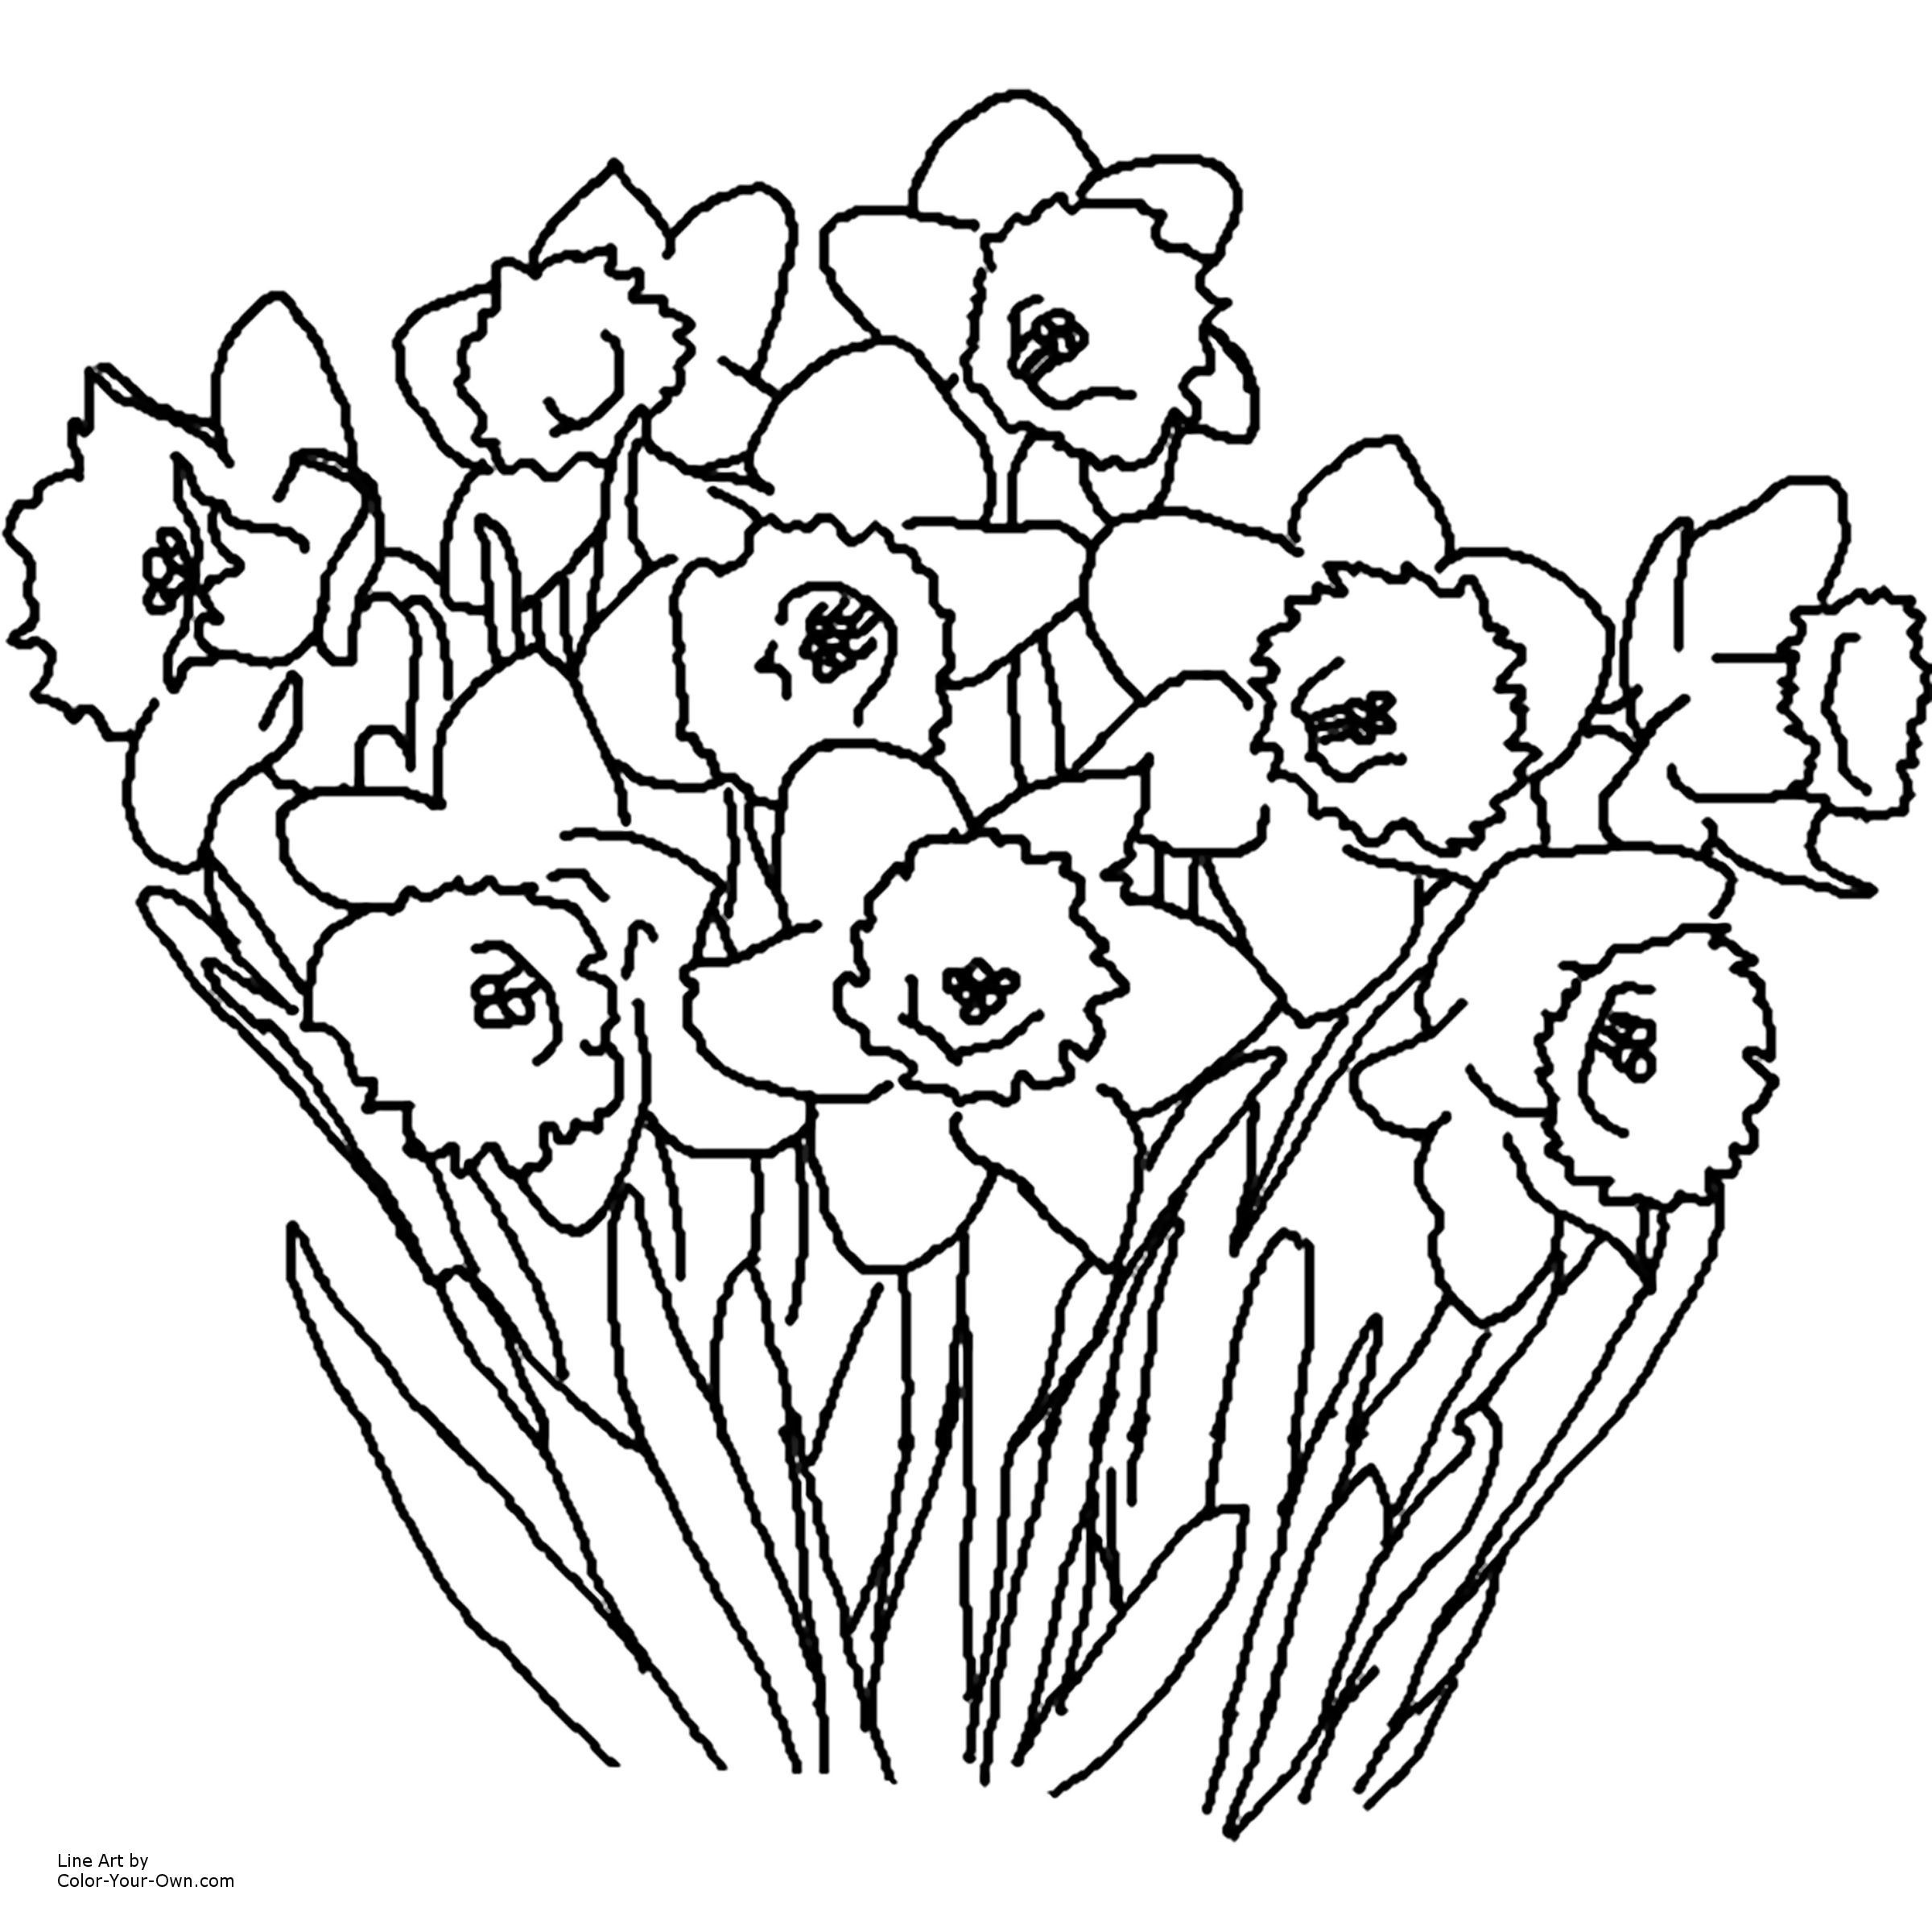 Proflowers Free Vase Of Free Printable Flower Coloring Pages Fresh Rose Coloring Pages for with Free Printable Flower Coloring Pages Luxury Flower Coloring Pages Printable with Wallpapers Hd for android Of